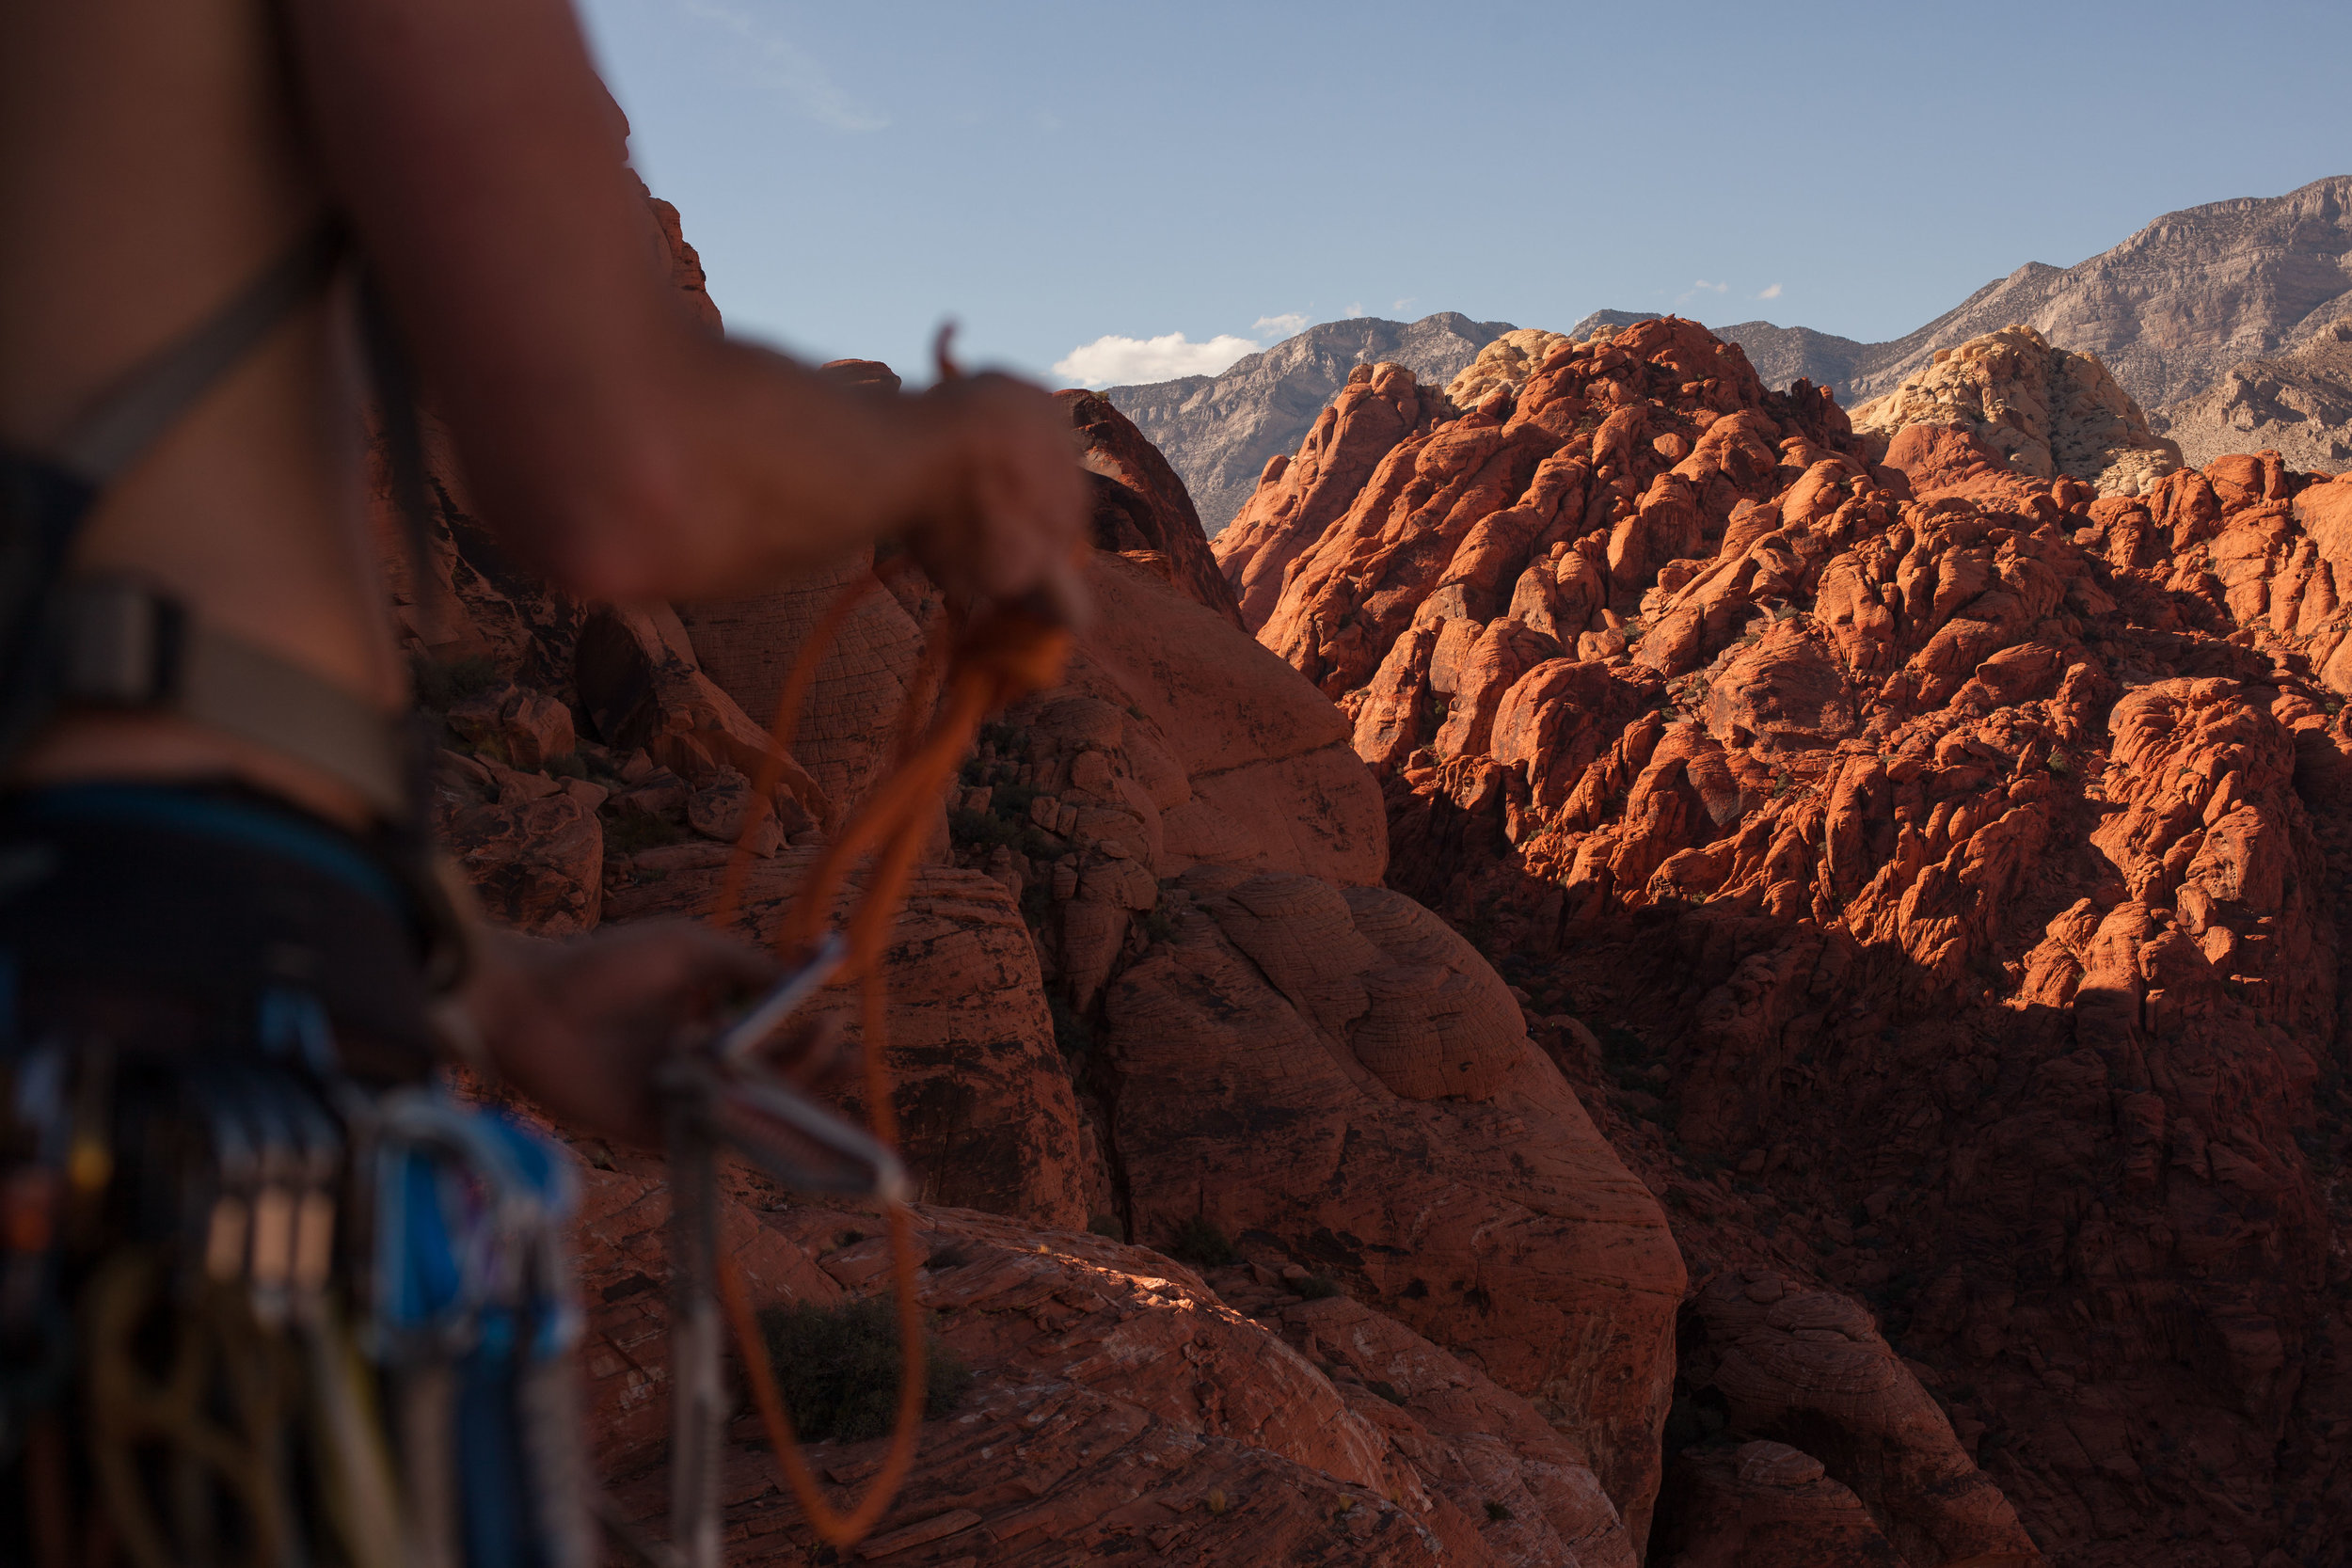 Graham gearing up on a climb in Red Rocks